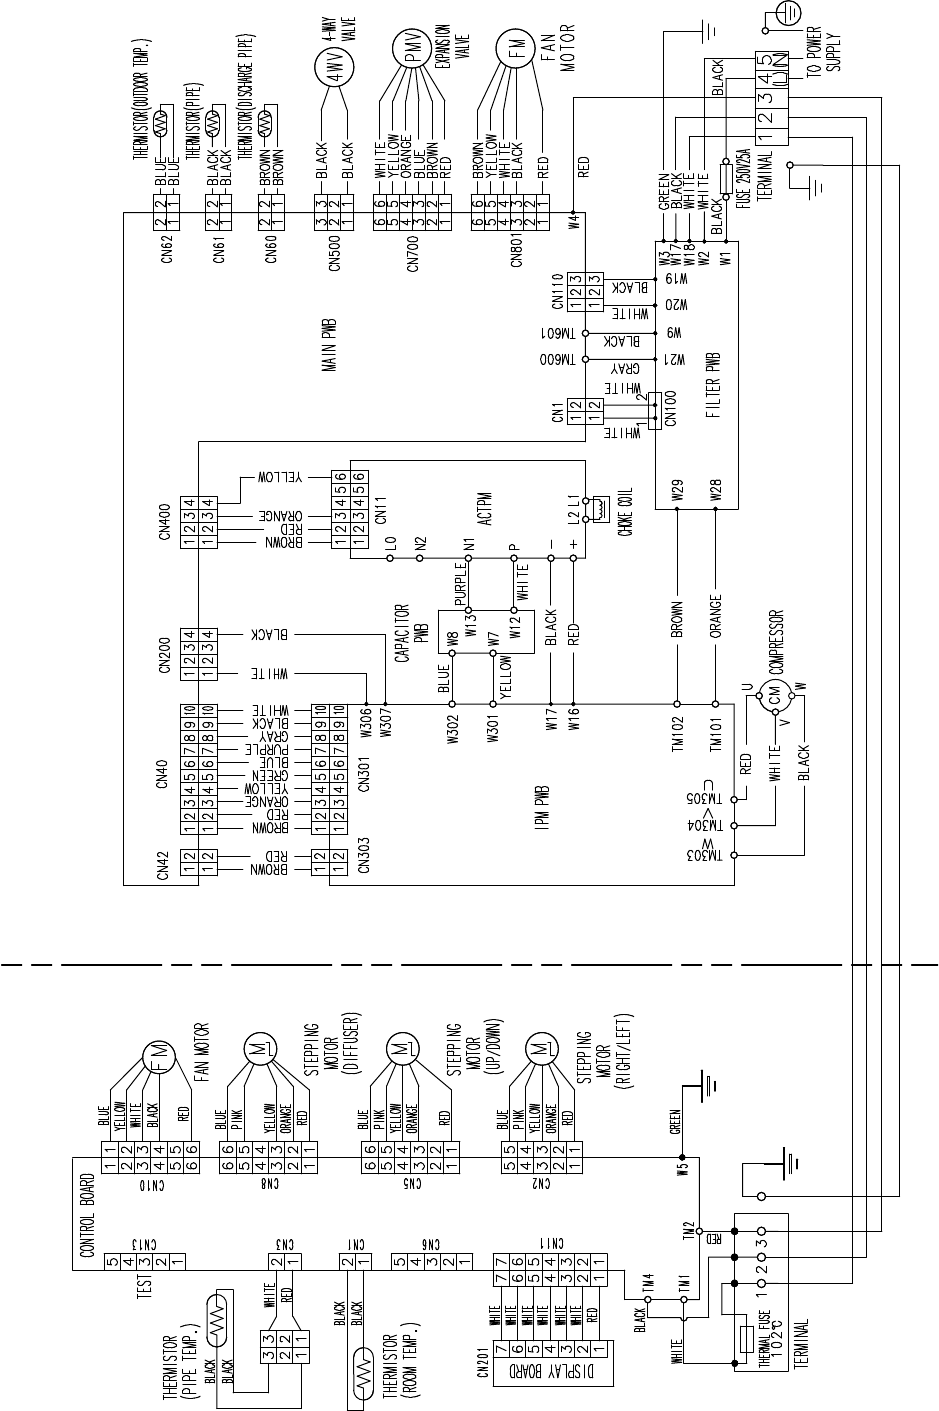 896ecdac 013b 4fa8 b569 aef9ae0e5fd5 bg5 page 5 of fujitsu air conditioner aoyr24lcc user guide fujitsu ductless split installation manual at suagrazia.org